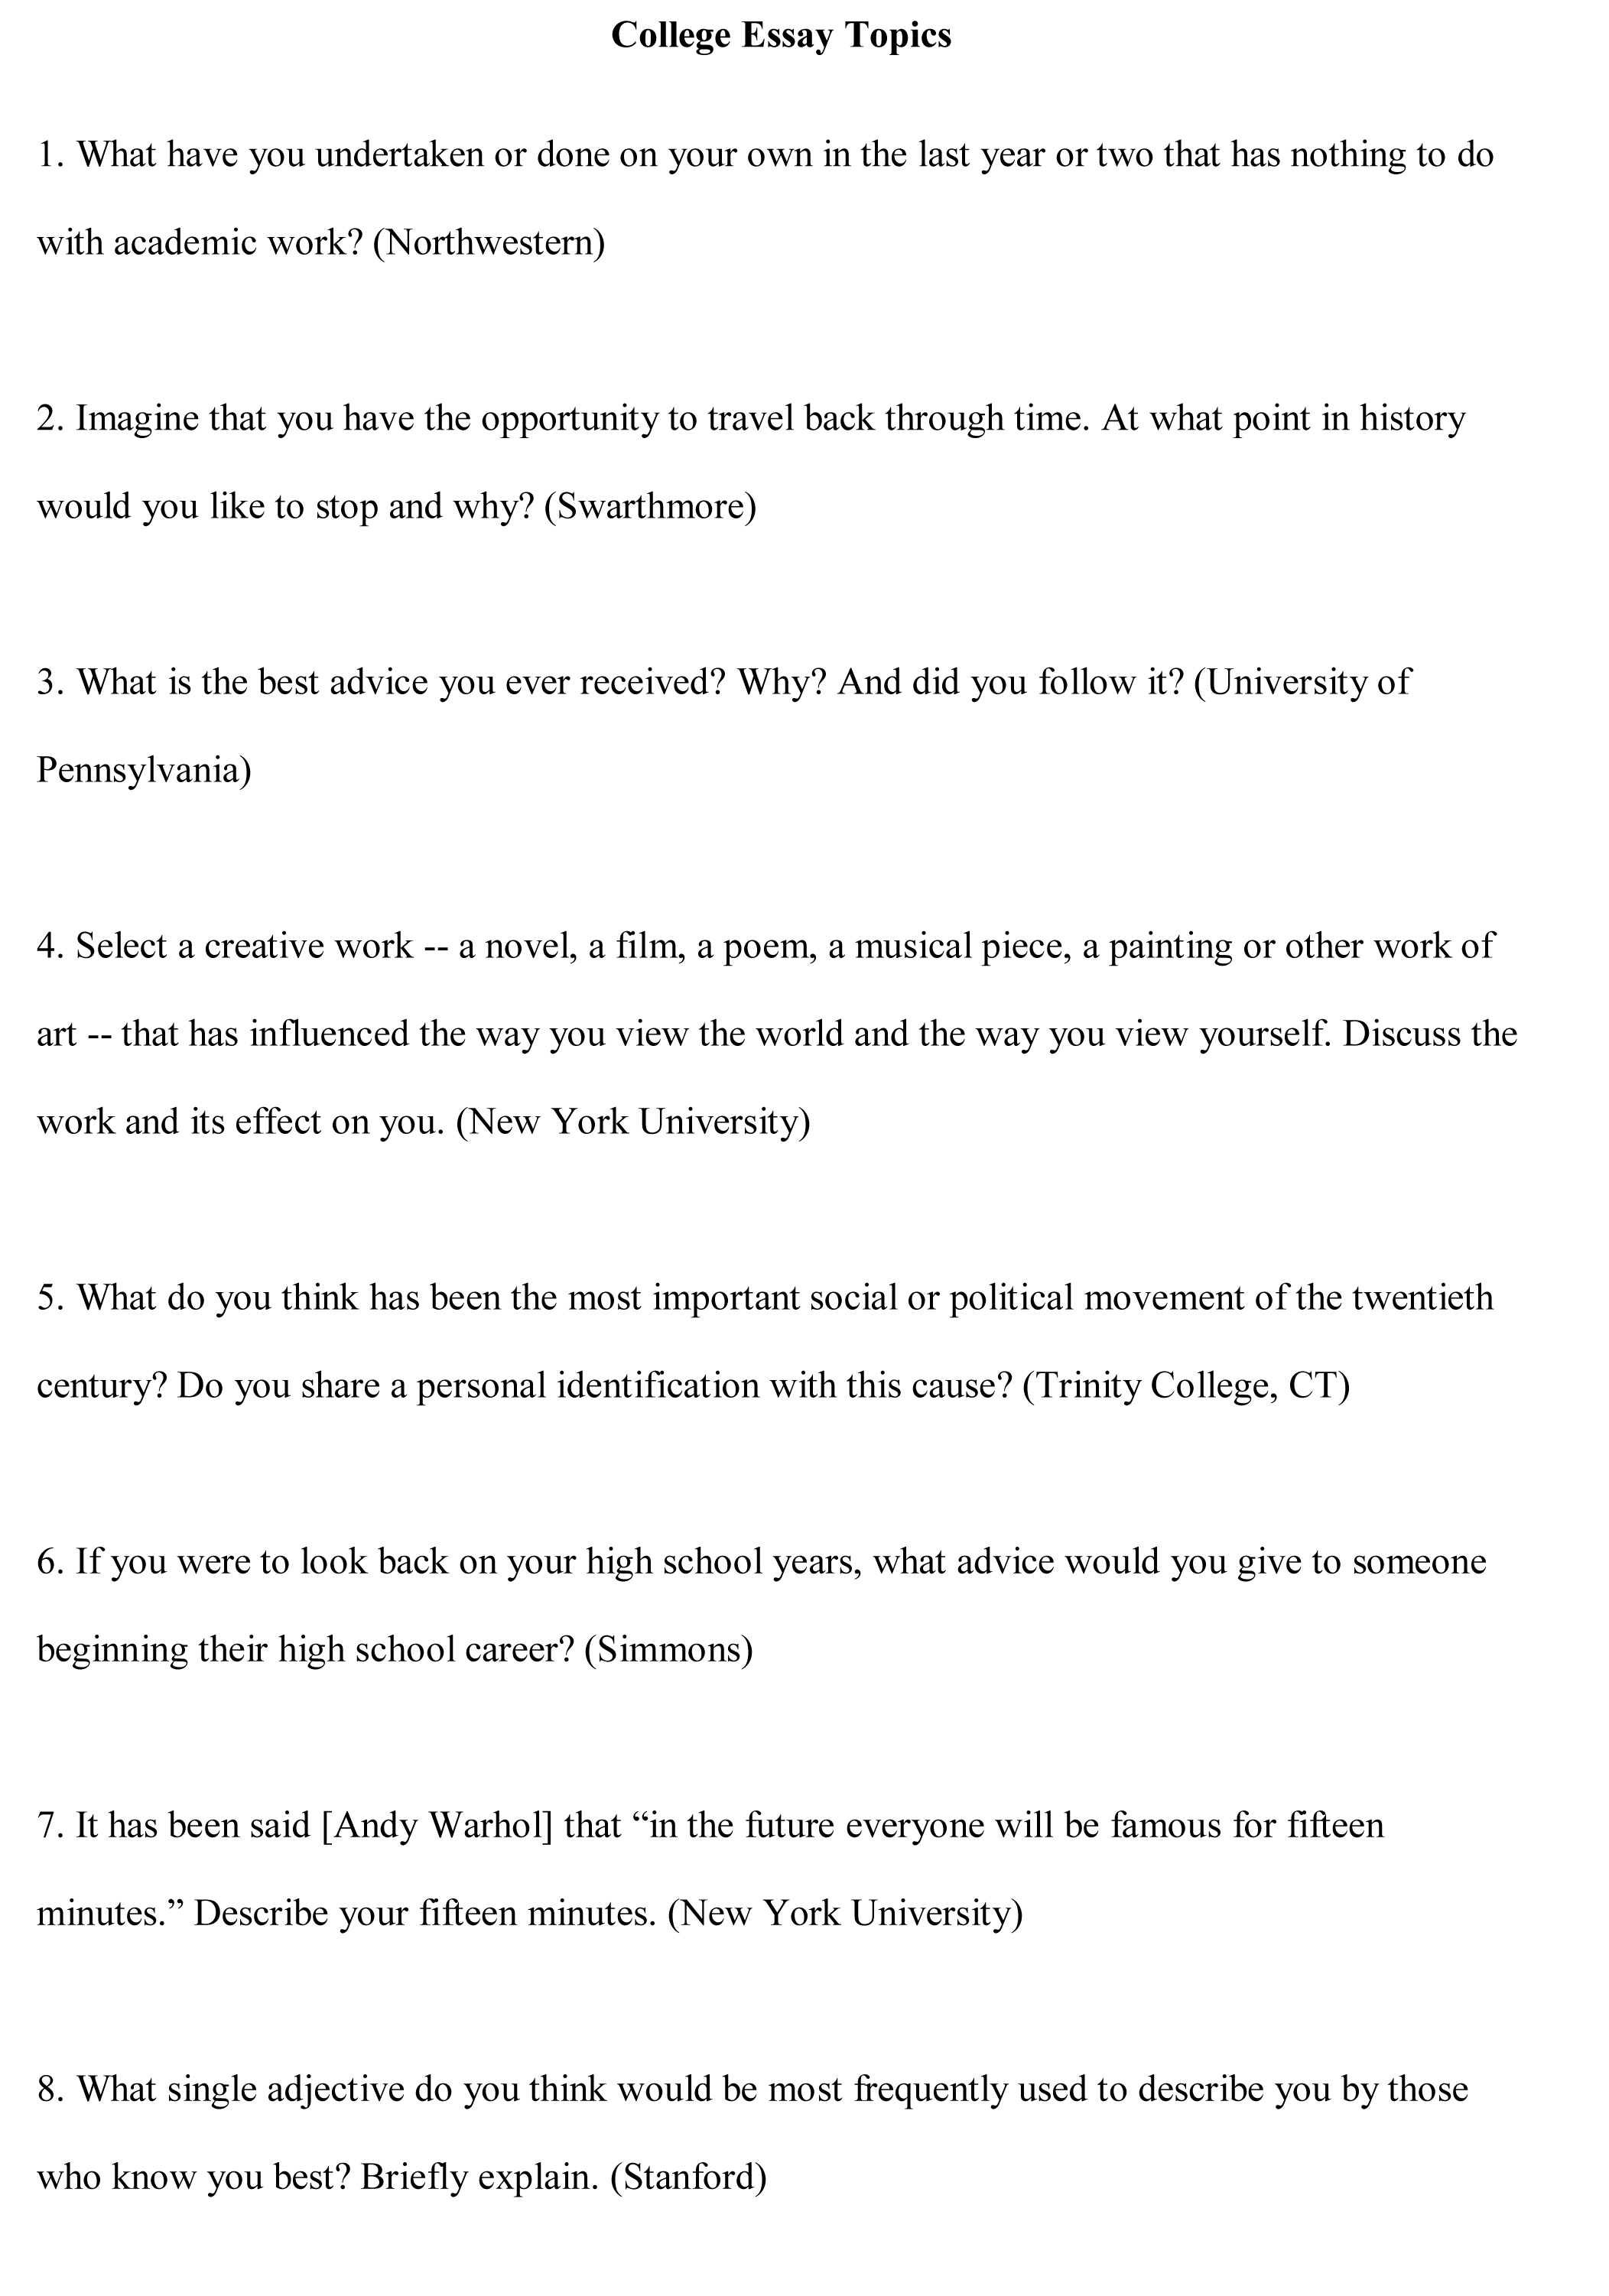 014 College Essay Topics Free Sample1 Informative Introductions Frightening Introduction Examples Paragraph Full